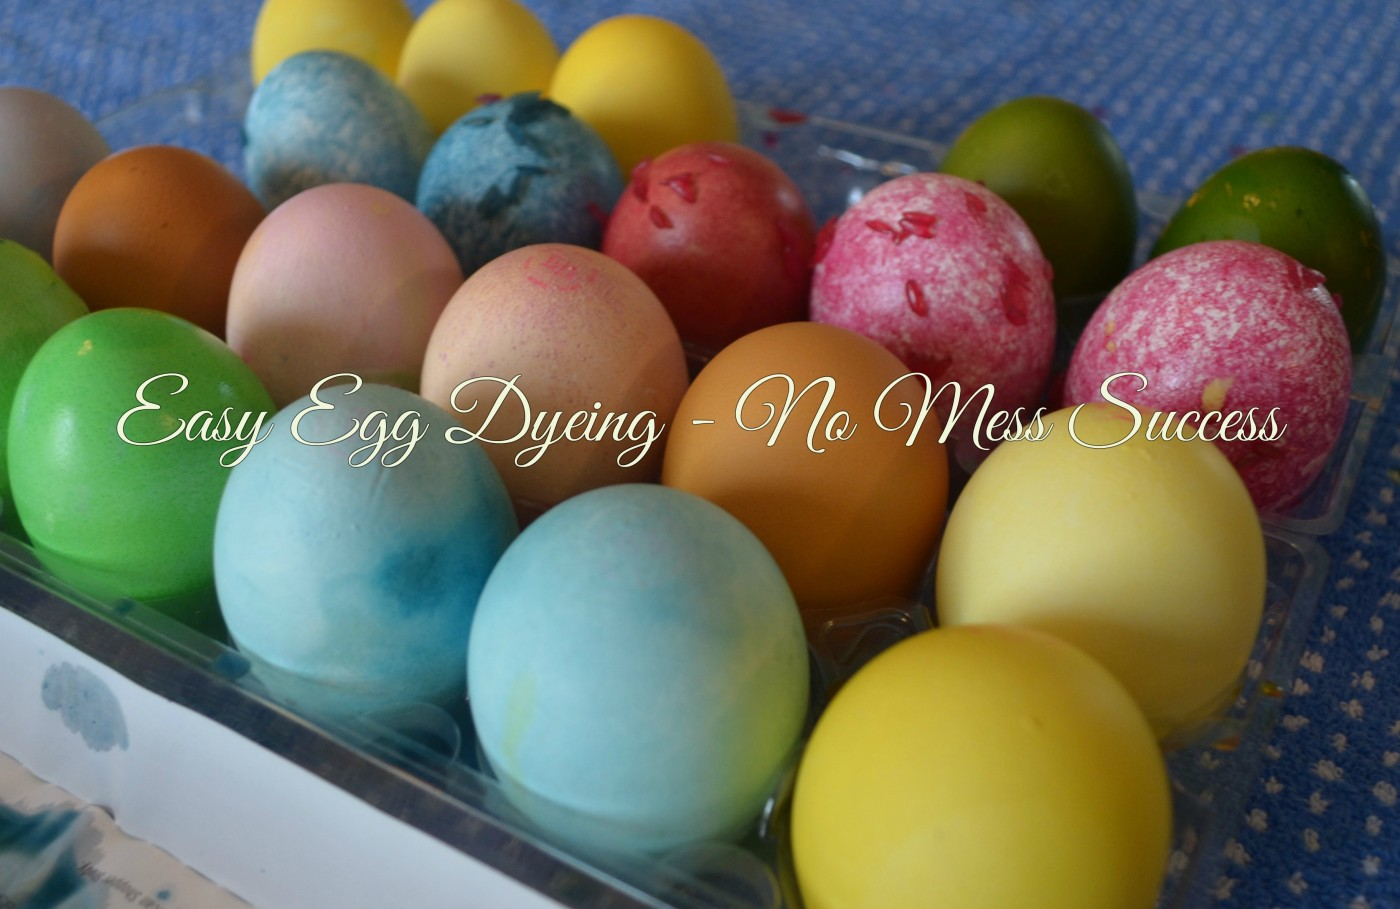 EASY EGG DYEING – NO MESS SUCCESS! – The Playful Parent